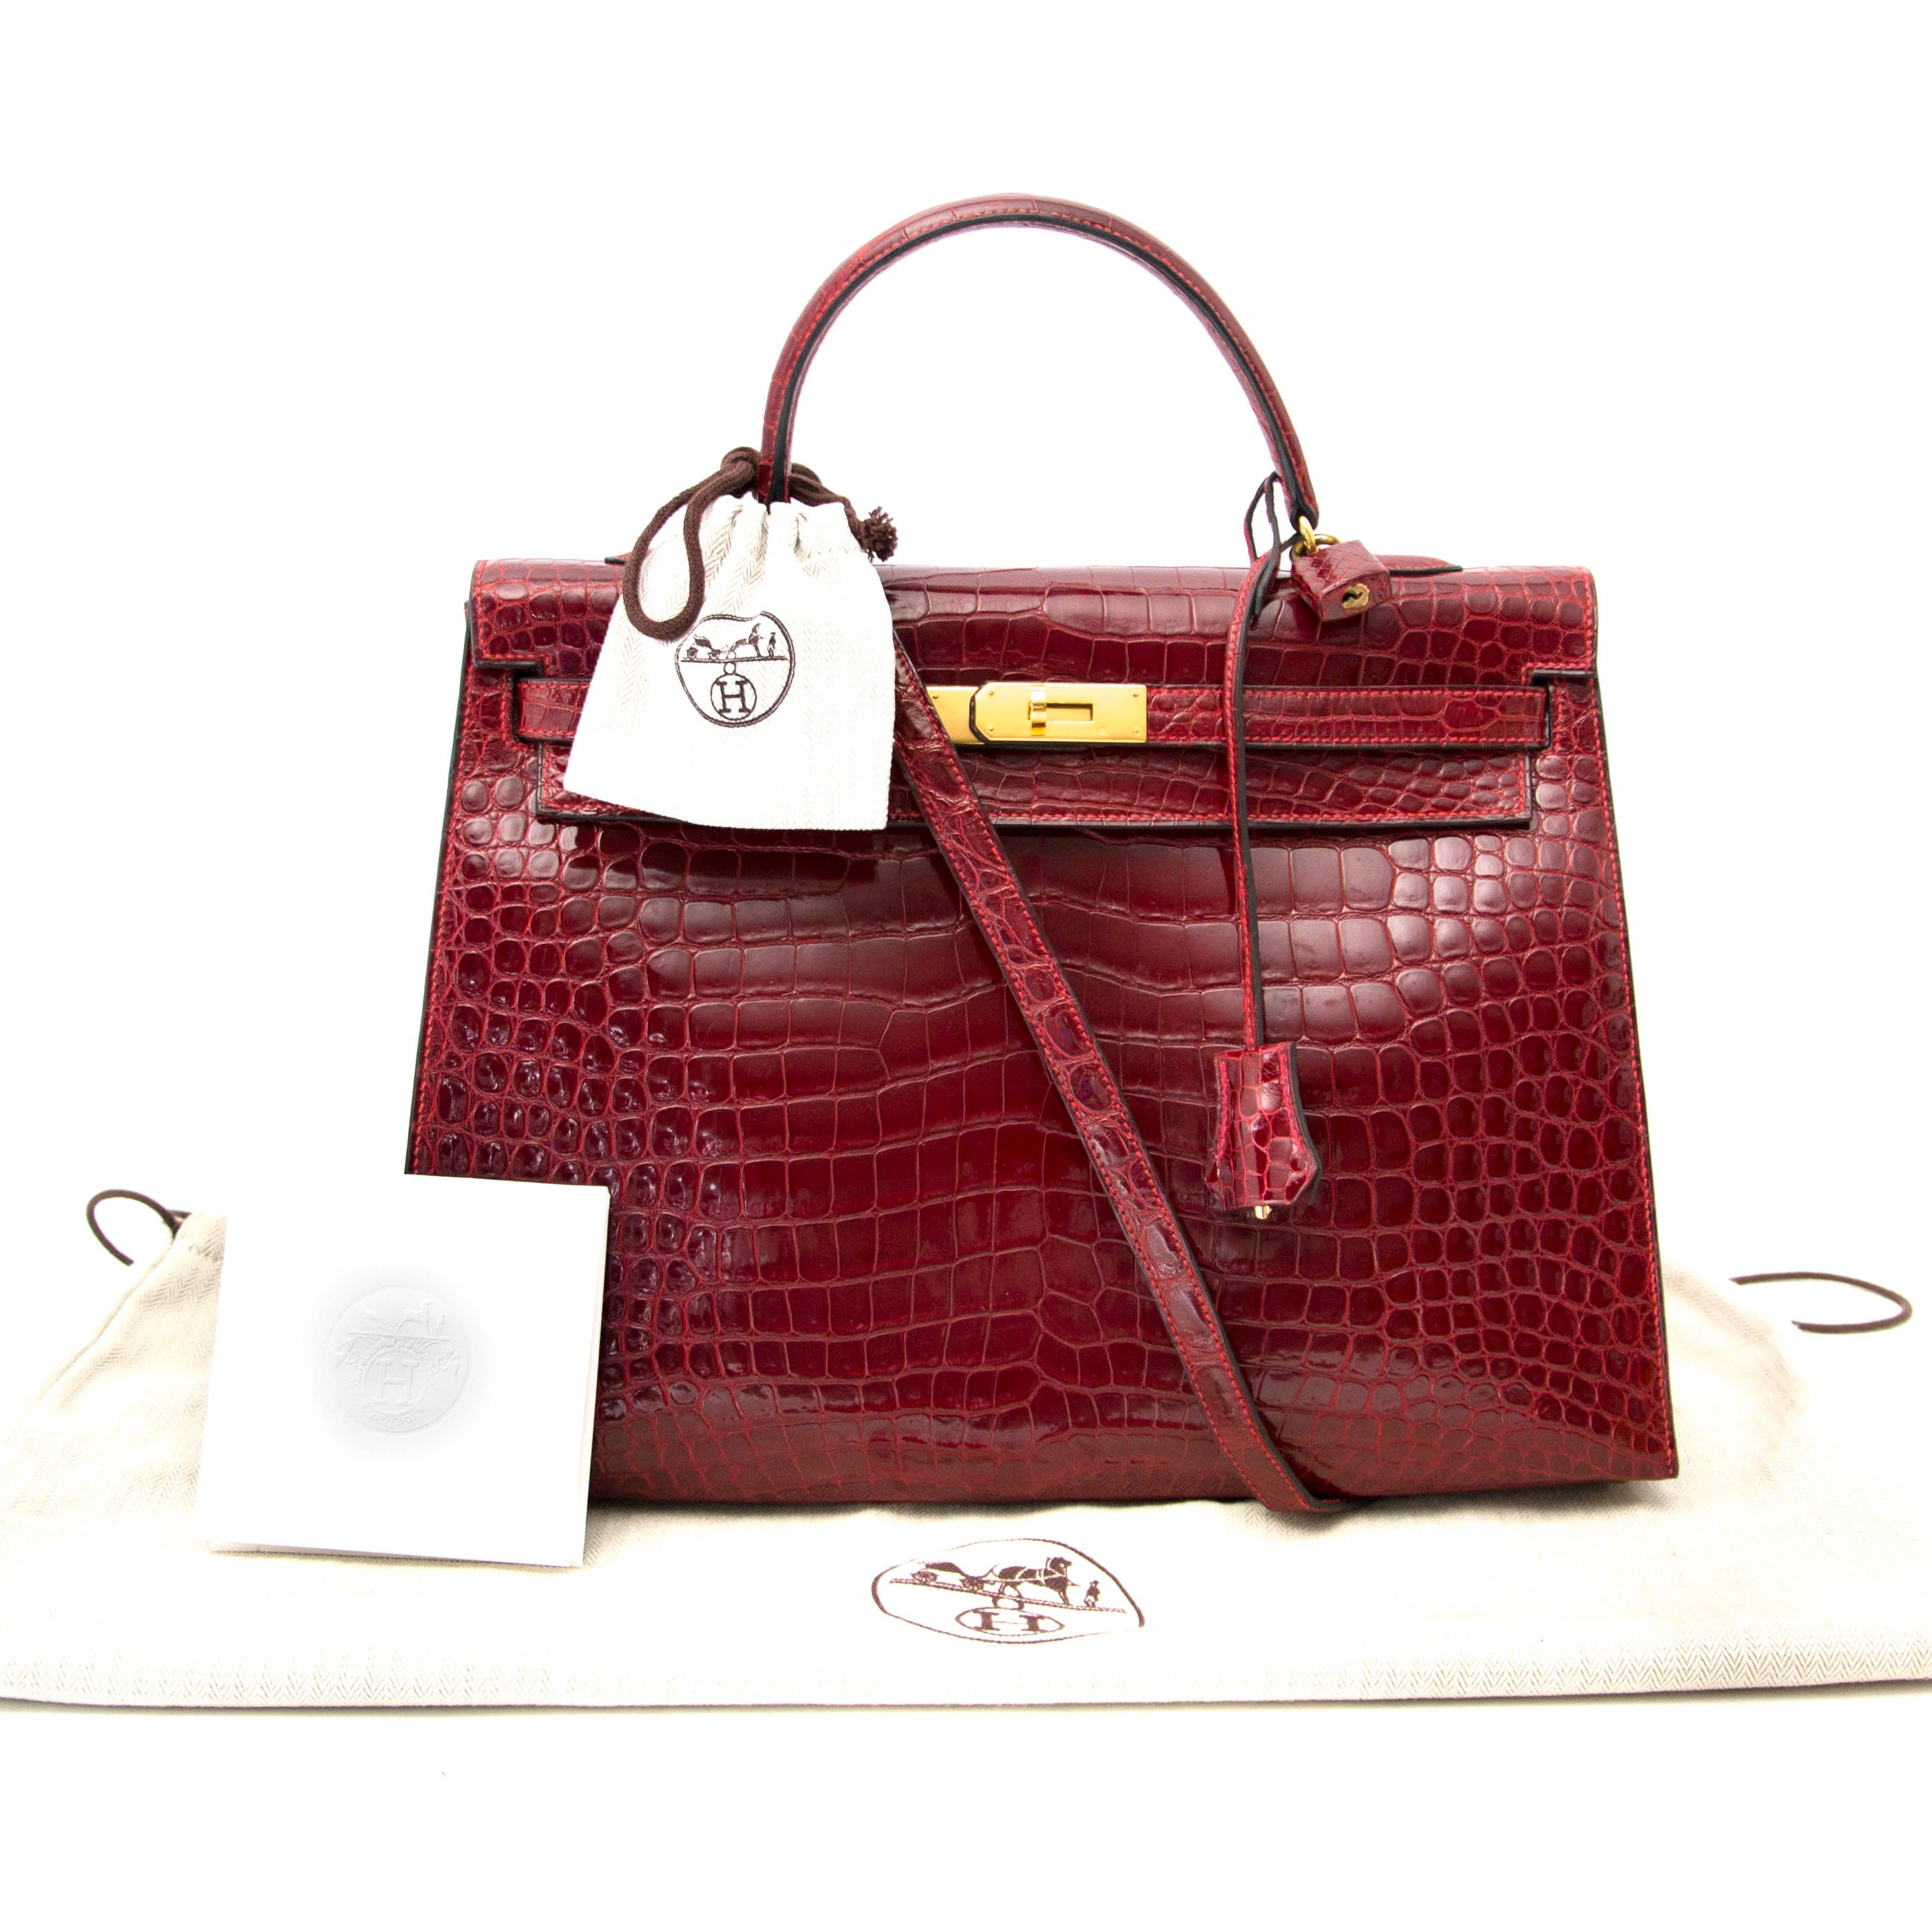 13a827dce8b ireland purchase guide hermès birkin vs. kelly 8cf20 220d7; 50% off rare hermes  kelly 35 rouge h alligator ghw at 1stdibs a5ee4 28b41